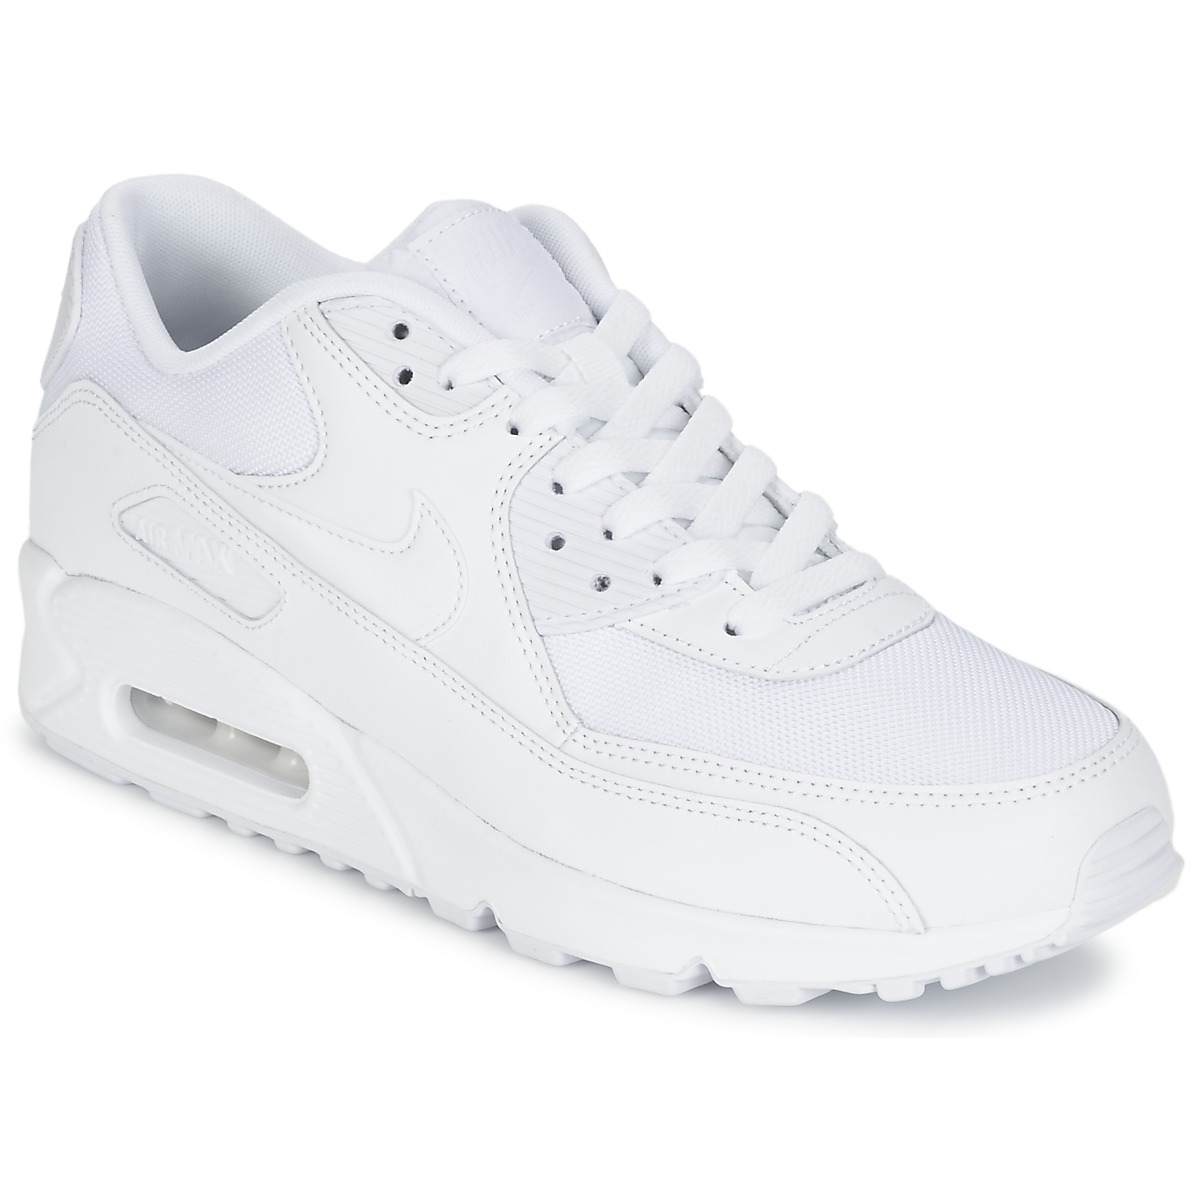 nike air max 90 dames zwart wit